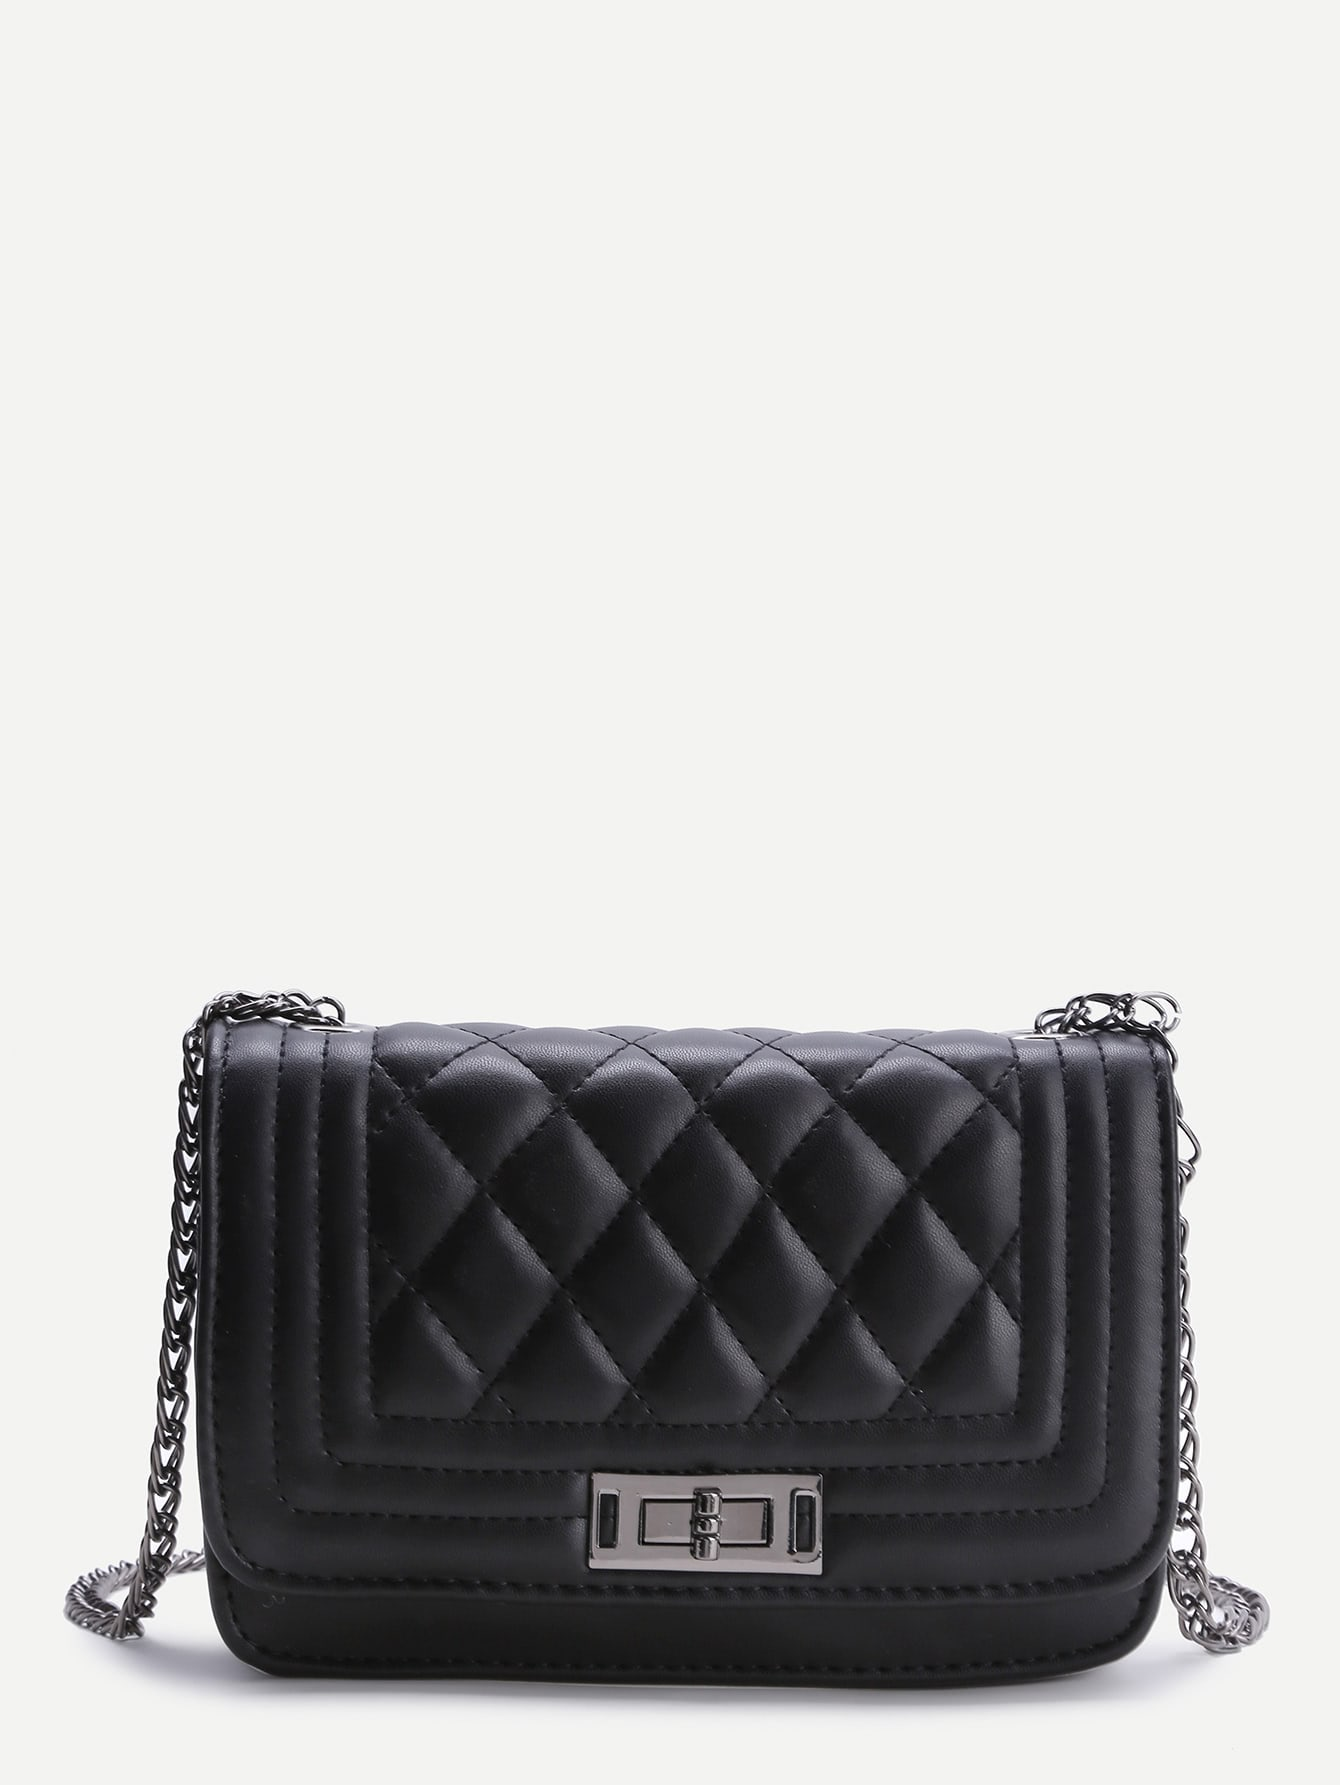 Black Quilted Crossbody Bag With Chain